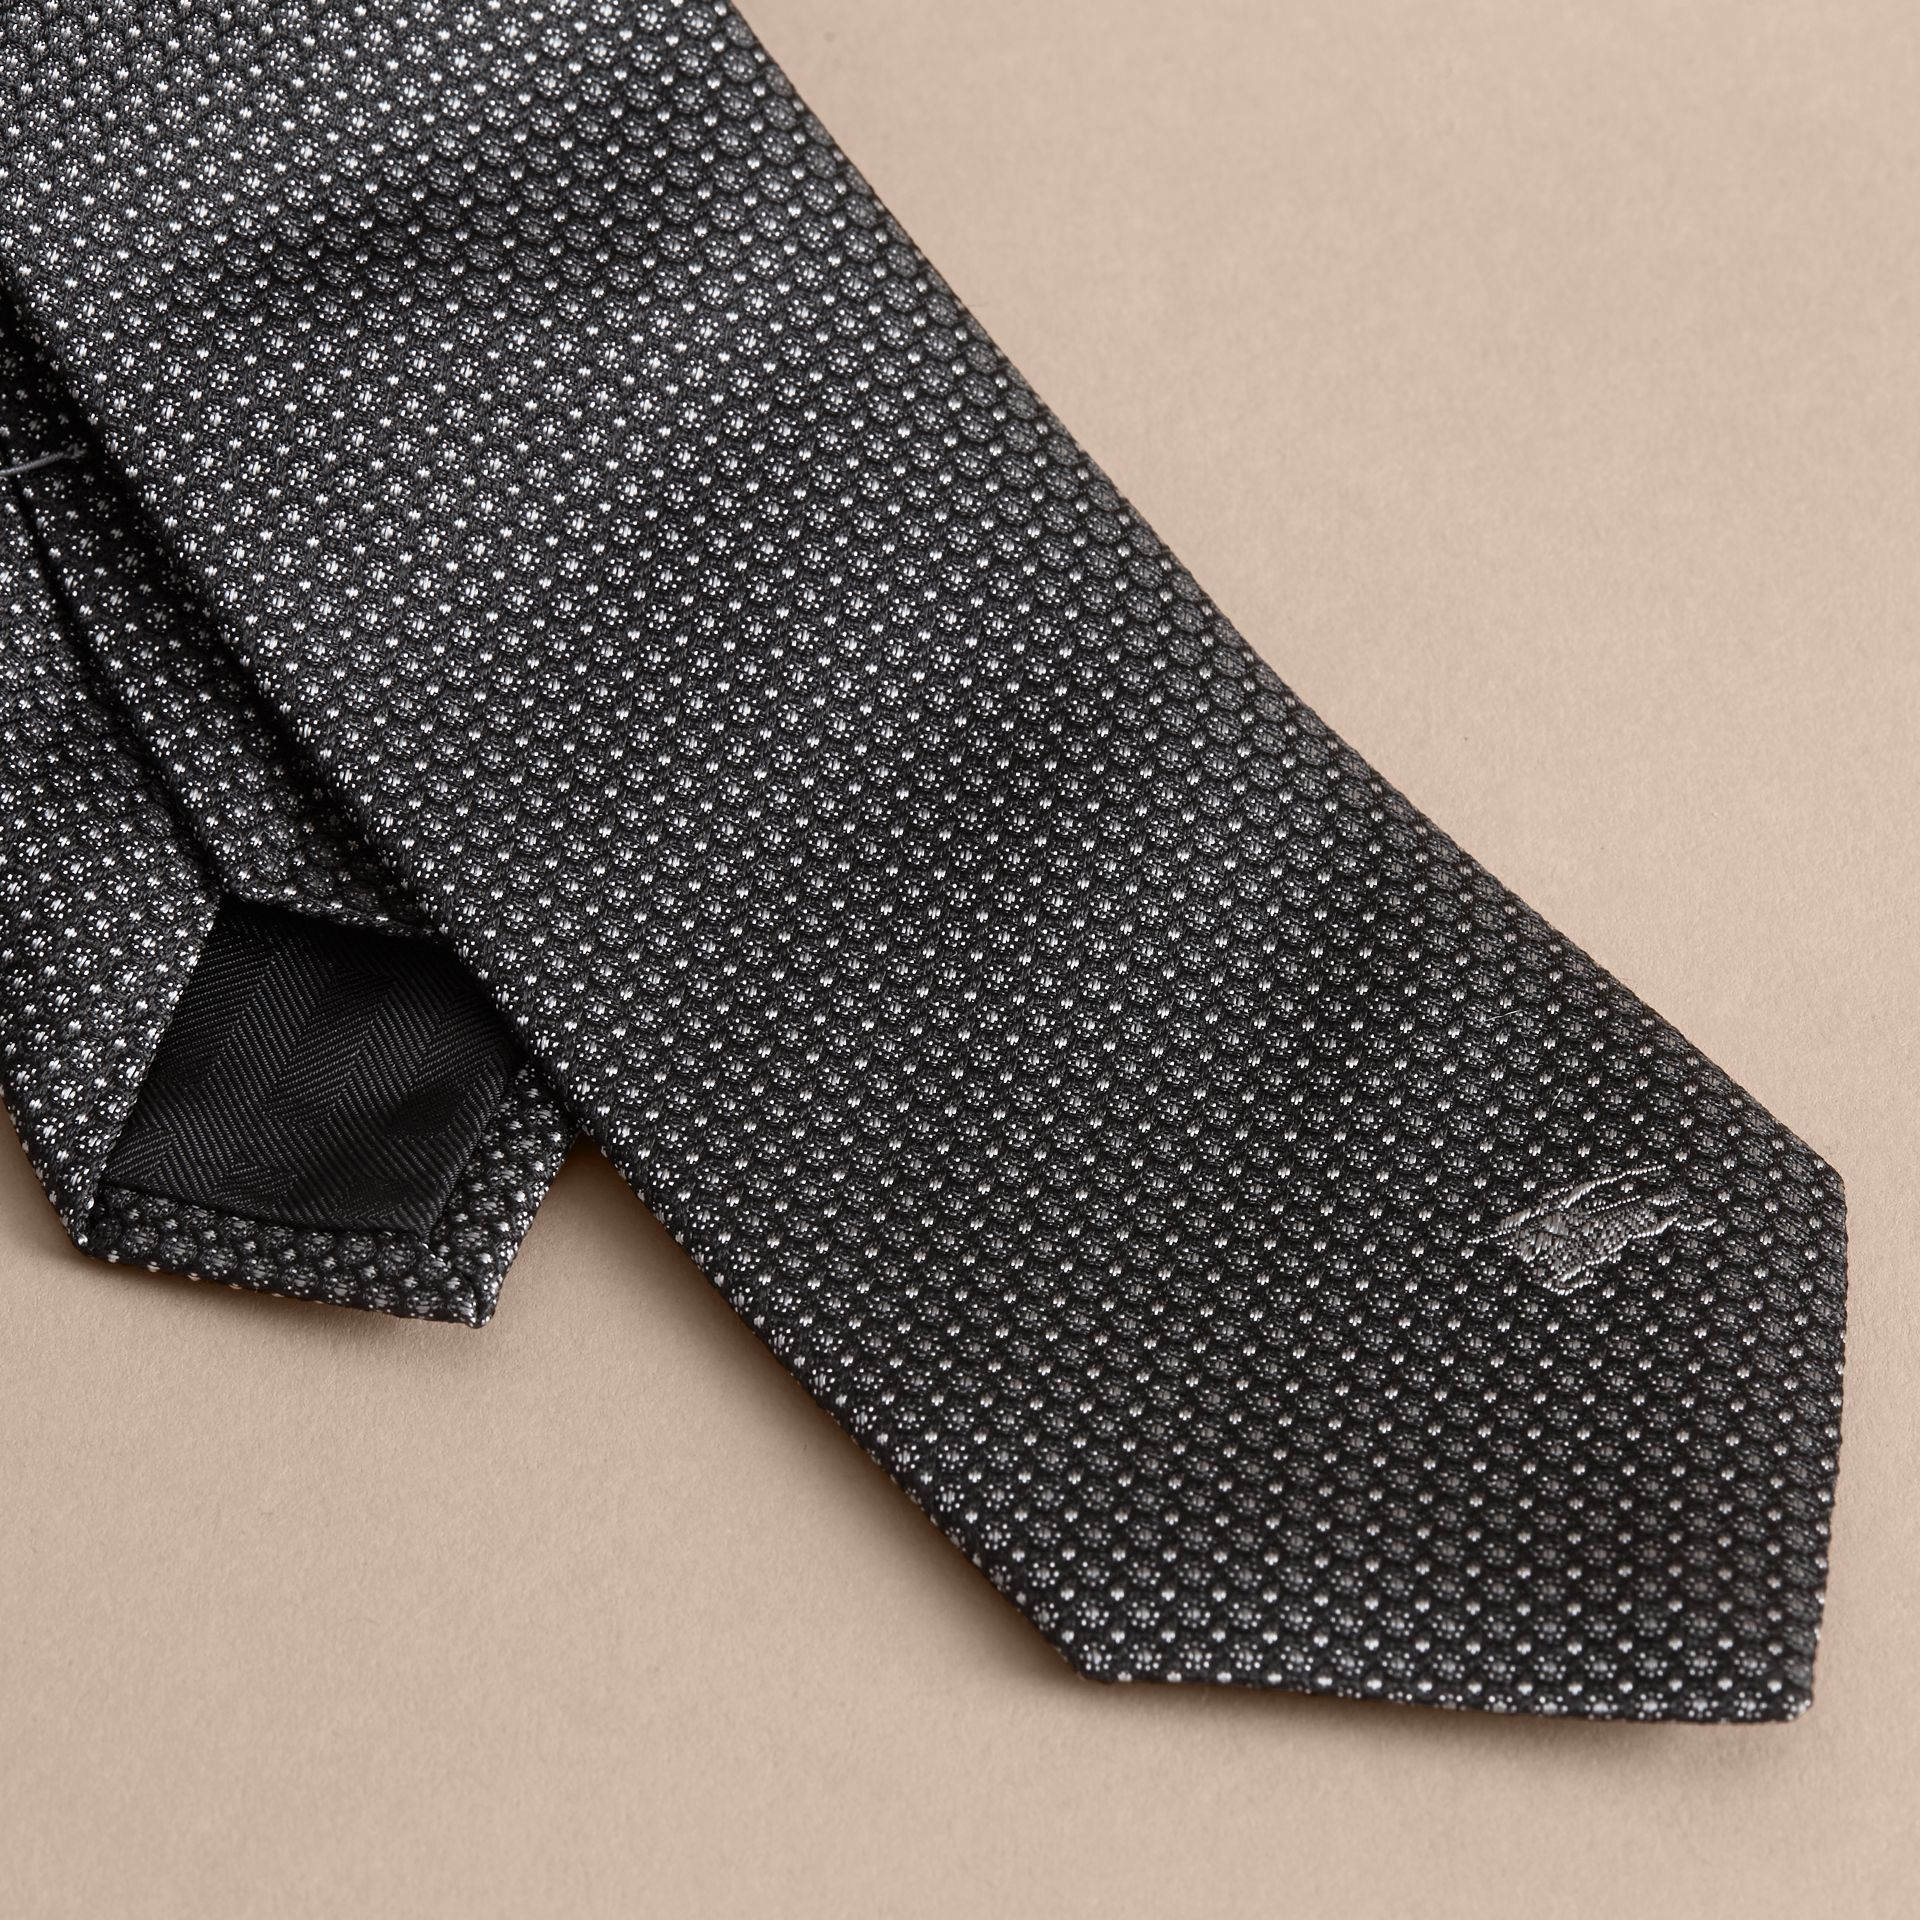 Modern Cut Patterned Silk Tie in Black - Men | Burberry - gallery image 2